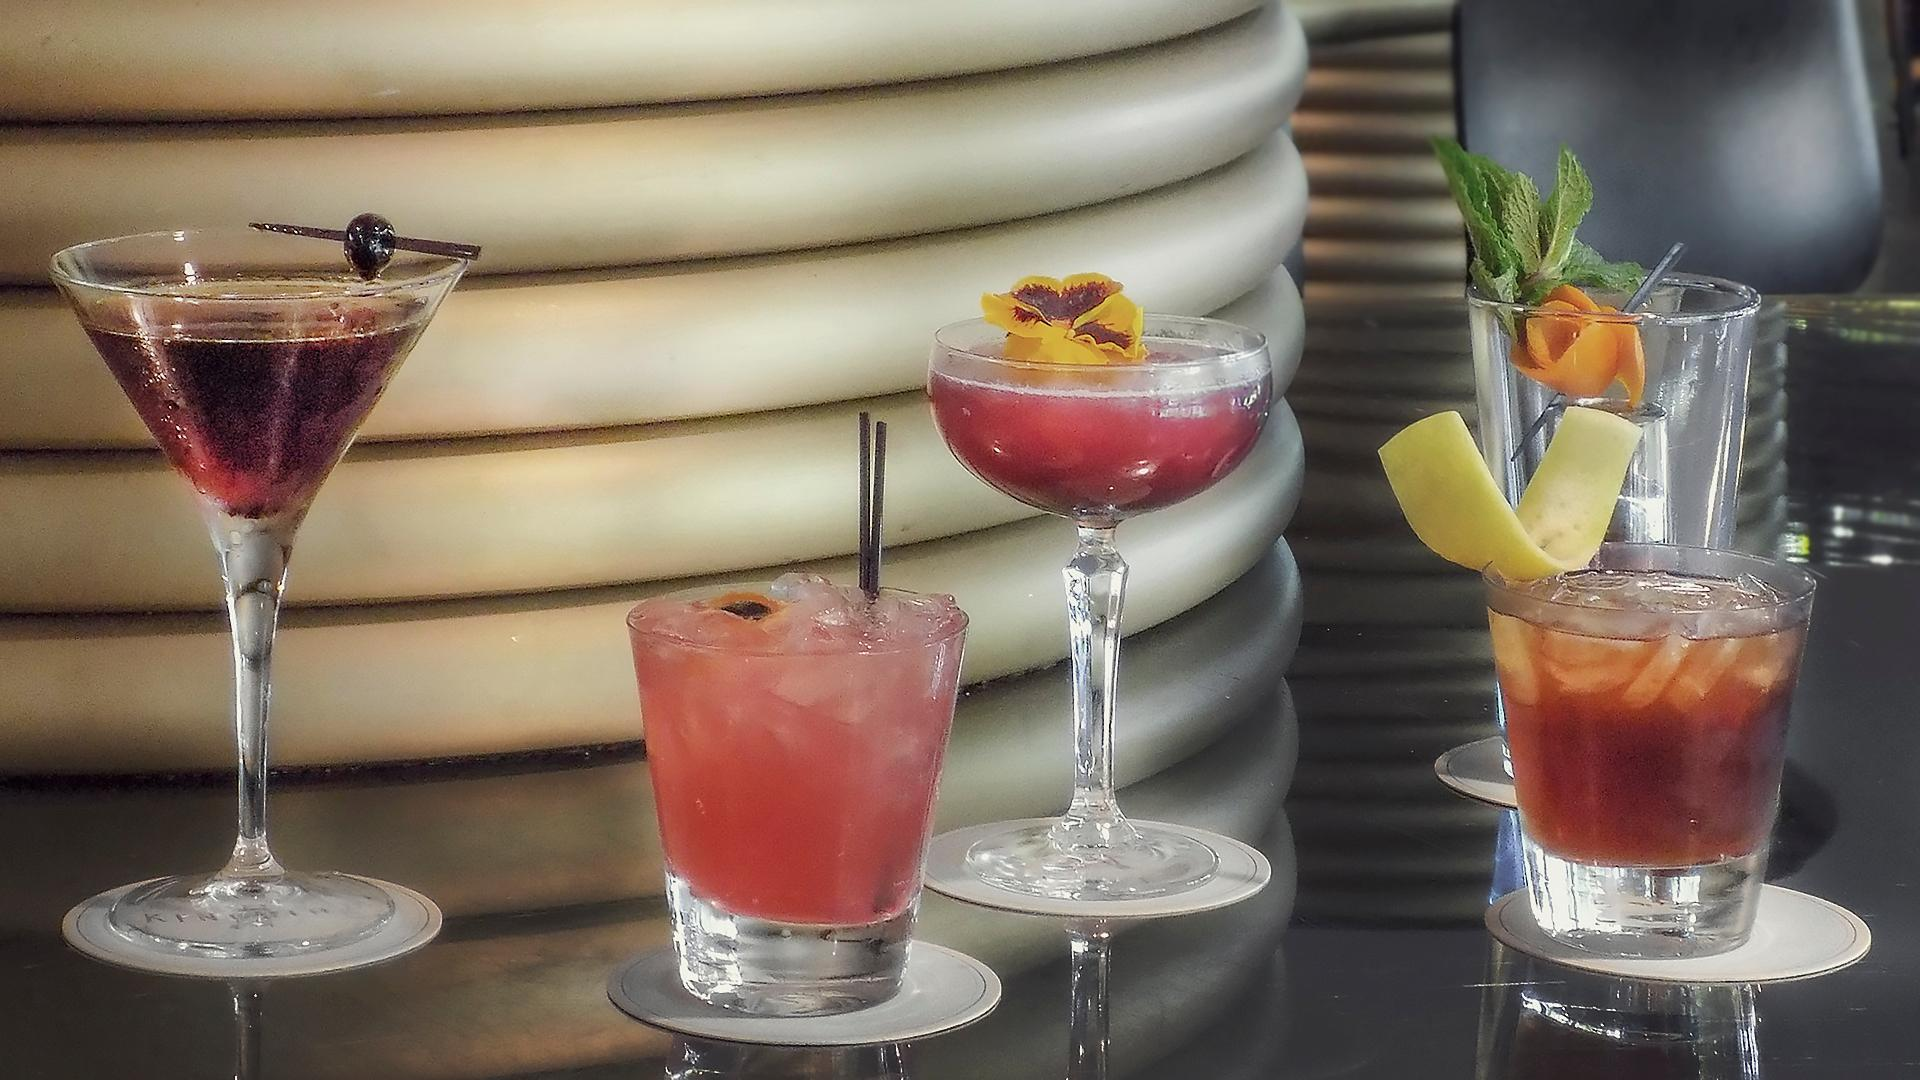 Kingbird, the Watergate Hotel's main bar, is offering several Hamilton-themed cocktails and a special after party on Fridays and Saturdays. (Image: Courtesy The Watergate Hotel)